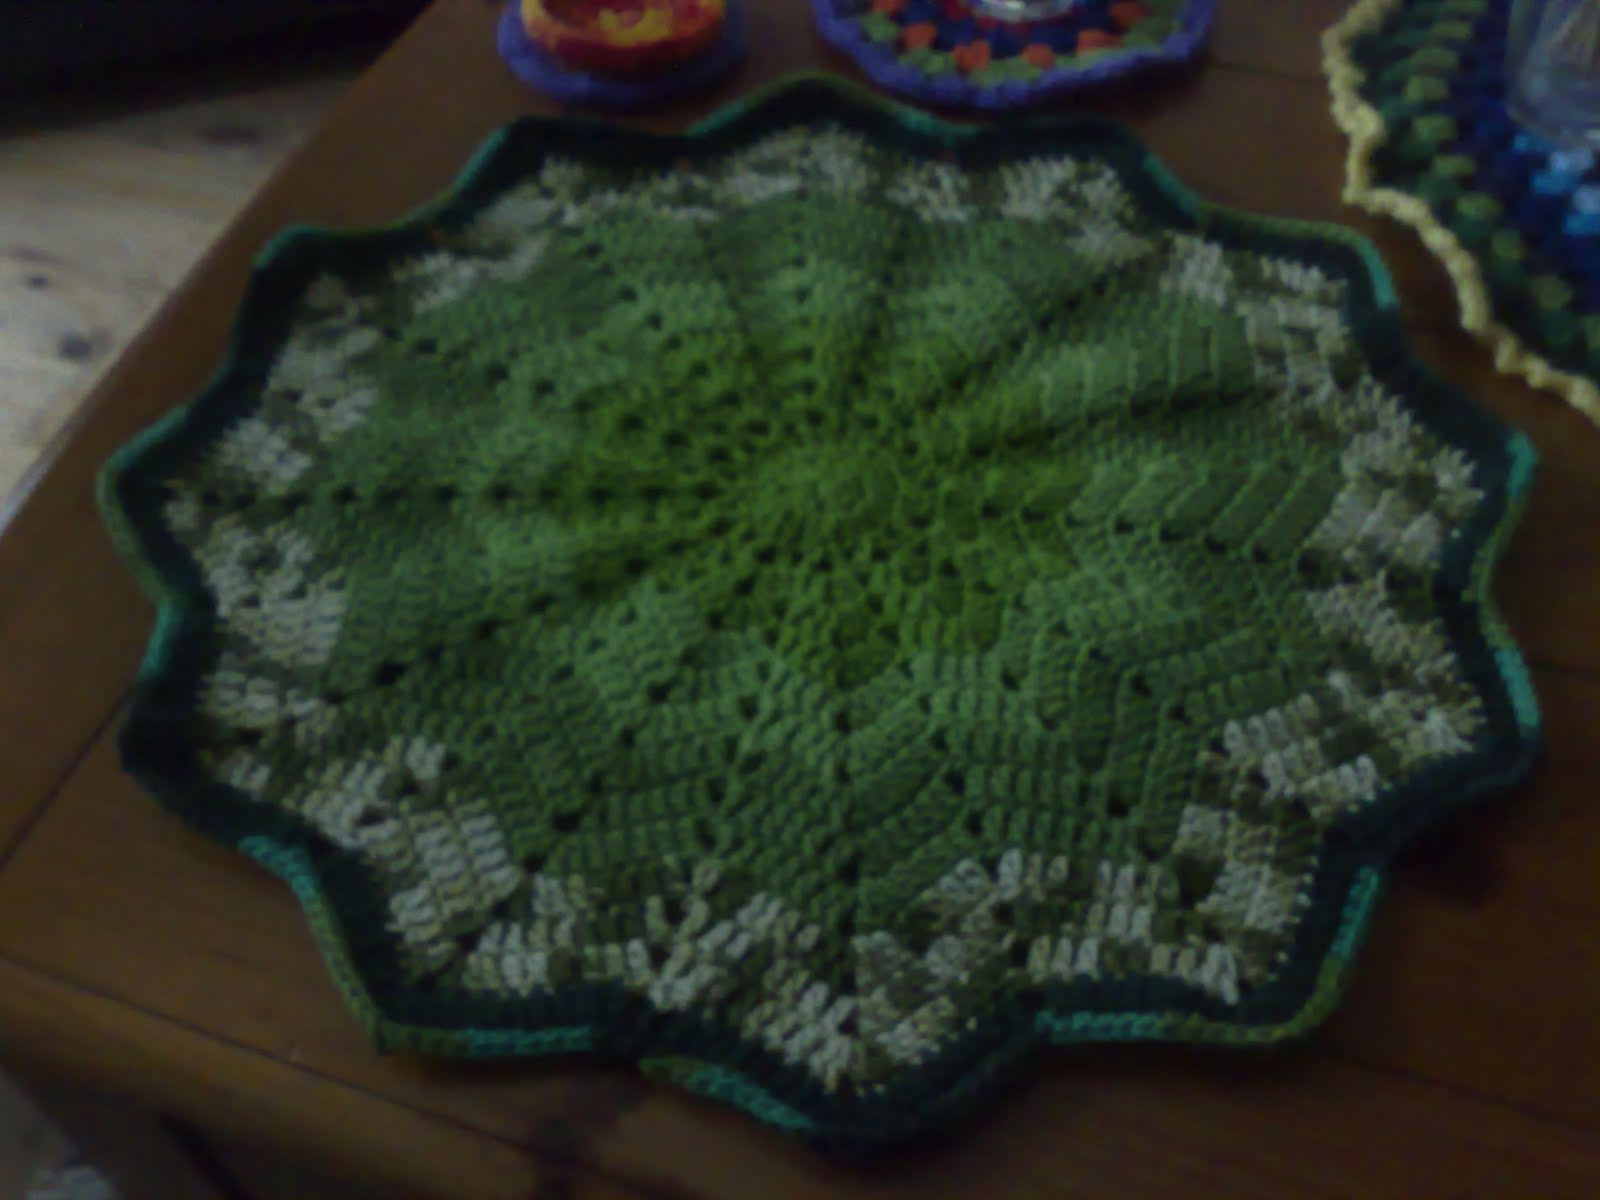 MoniRose Crochets: Most fab Round Ripple Afghan pattern